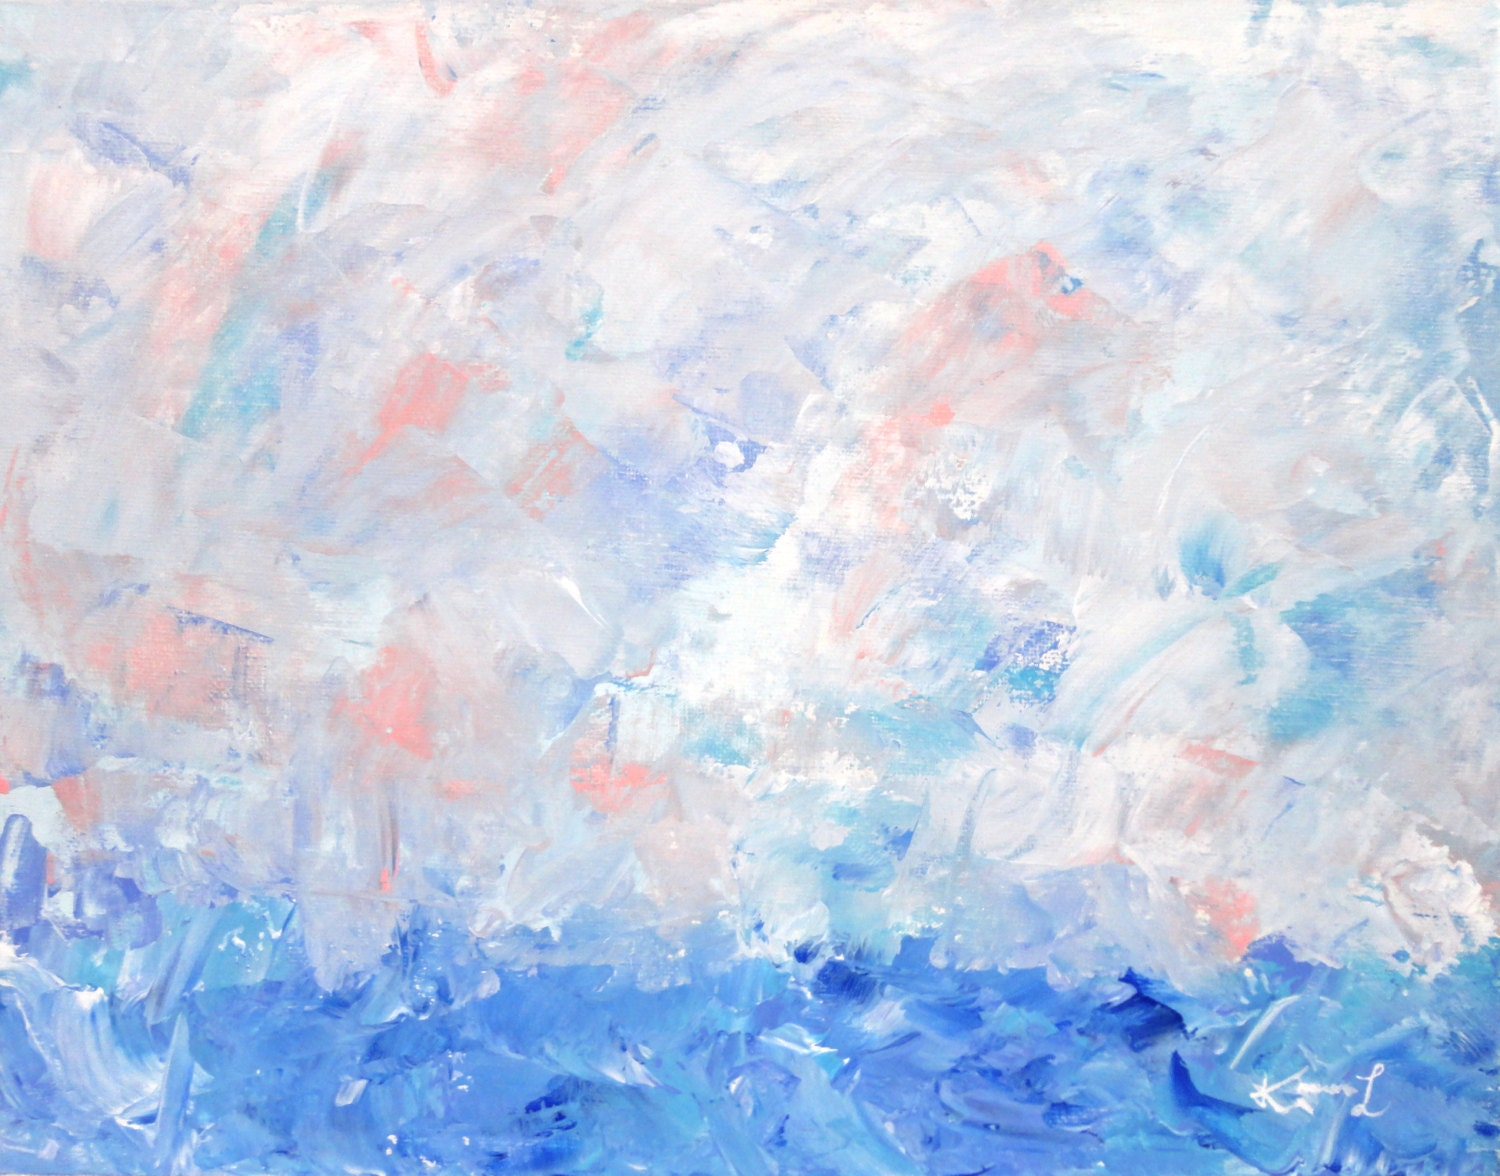 Seascape Original Art Acrylic on Canvas Board Landscape Painting Blue Pink Abstract Artwork - KamaraLarryStudio